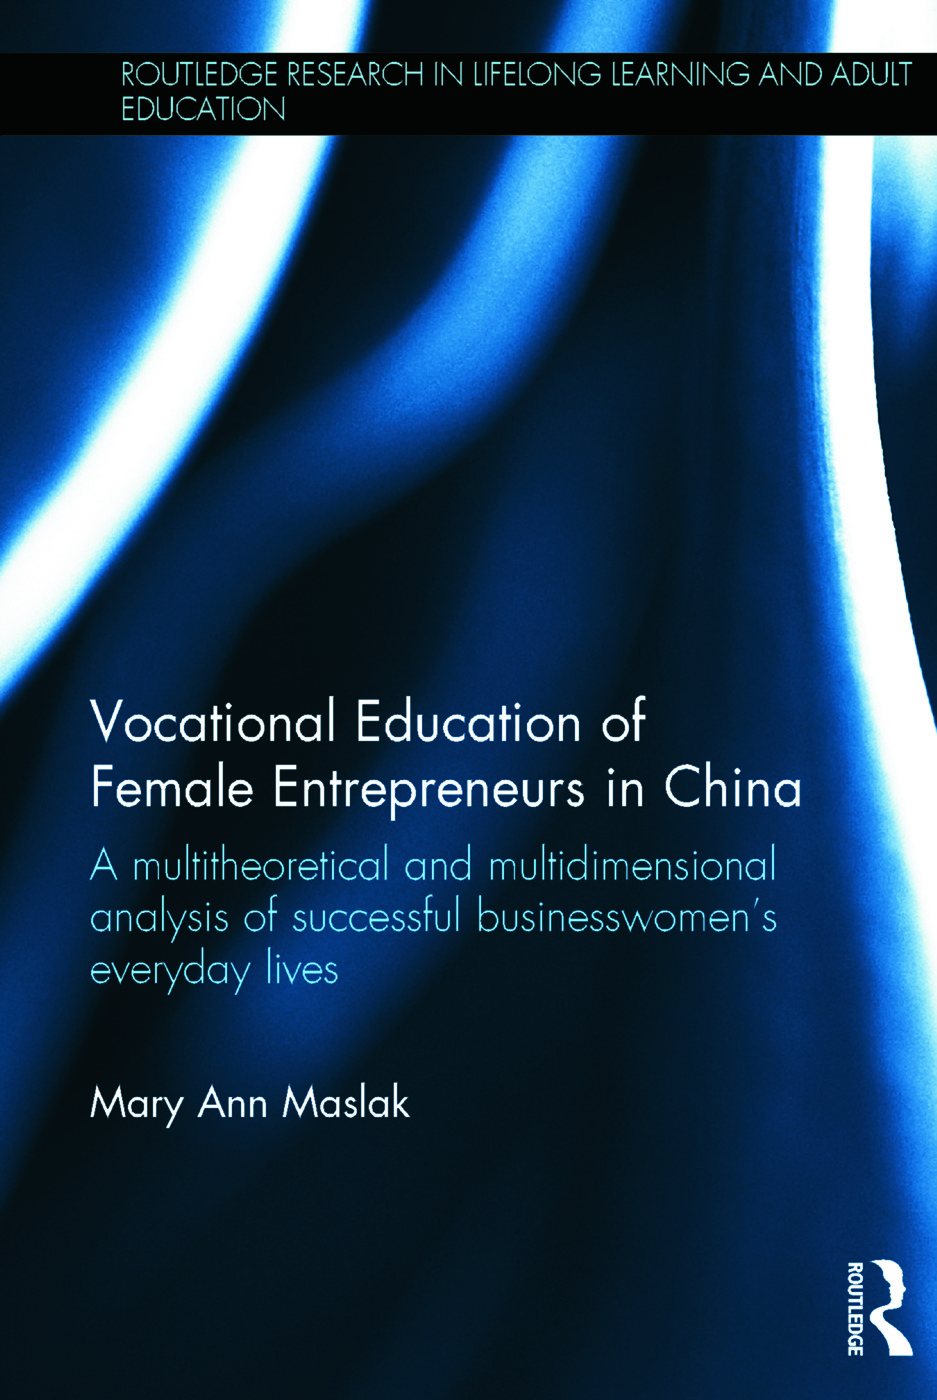 Vocational Education of Female Entrepreneurs in China: A multitheoretical and multidimensional analysis of successful businesswomen's everyday lives book cover